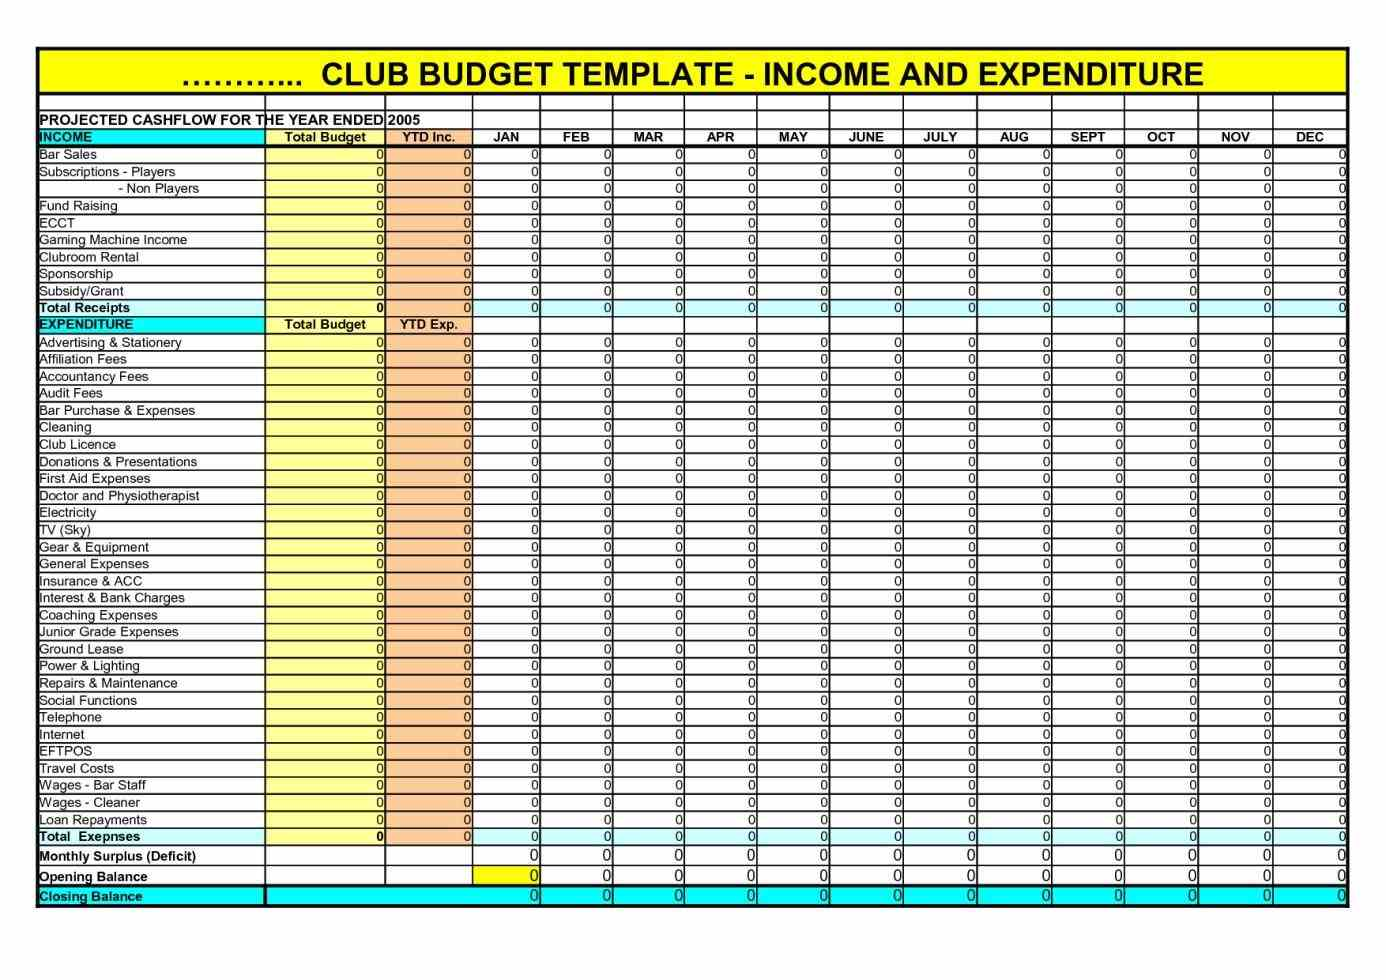 Spreadsheet For Expenses and Income | LAOBING KAISUO